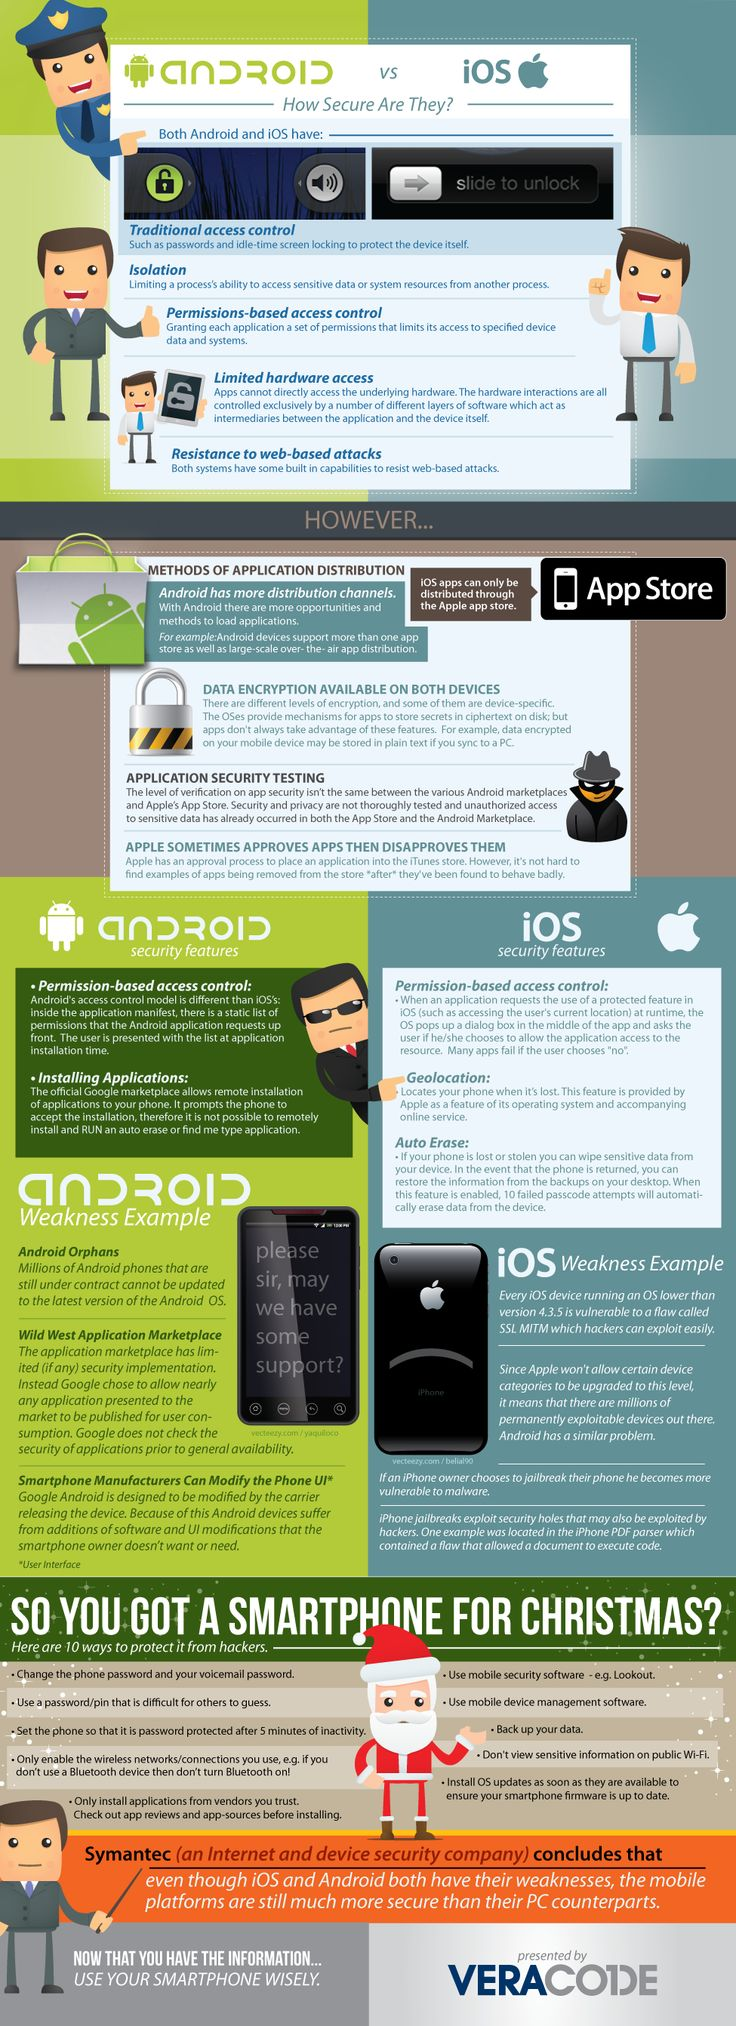 With the dominance of iOS and the rising popularity of Android devices in the mobile marketplace, the security of these devices is a growing concern and focus for smartphone users. This infographic examines the security features of Android and iOS, and also takes a look at their strengths and weaknesses.